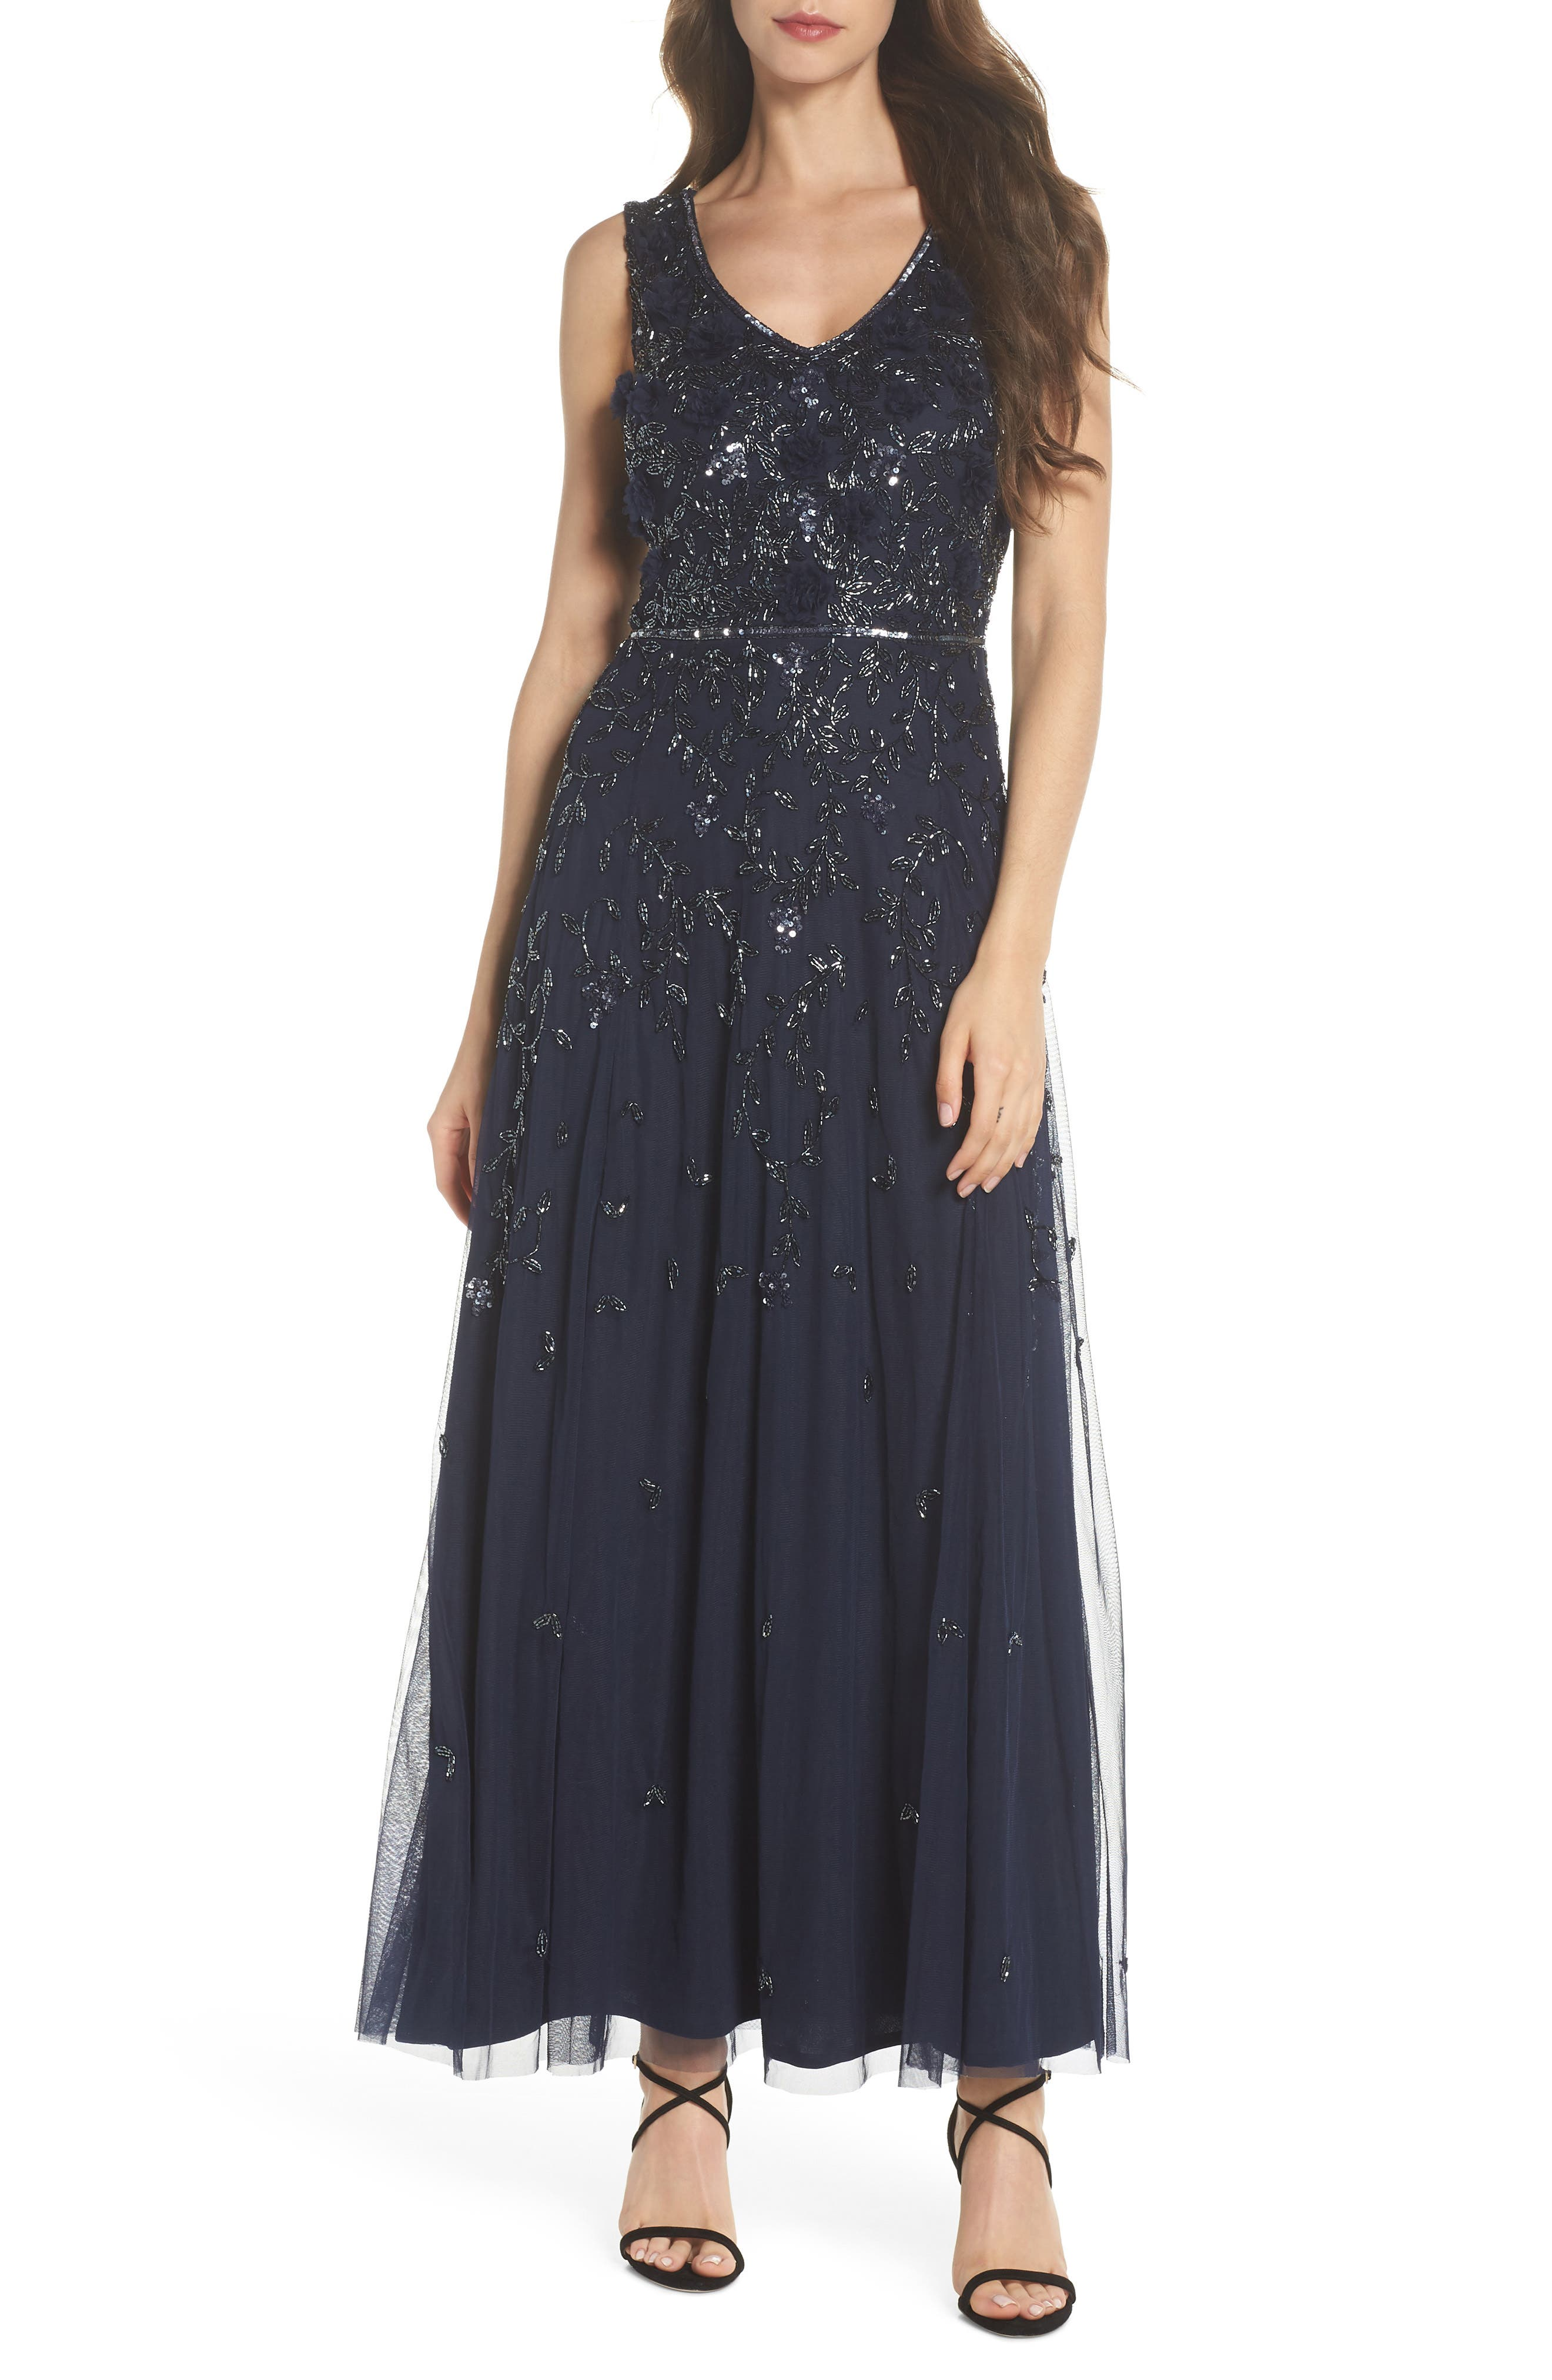 3D Embellished Mesh A-Line Gown,                             Main thumbnail 1, color,                             410